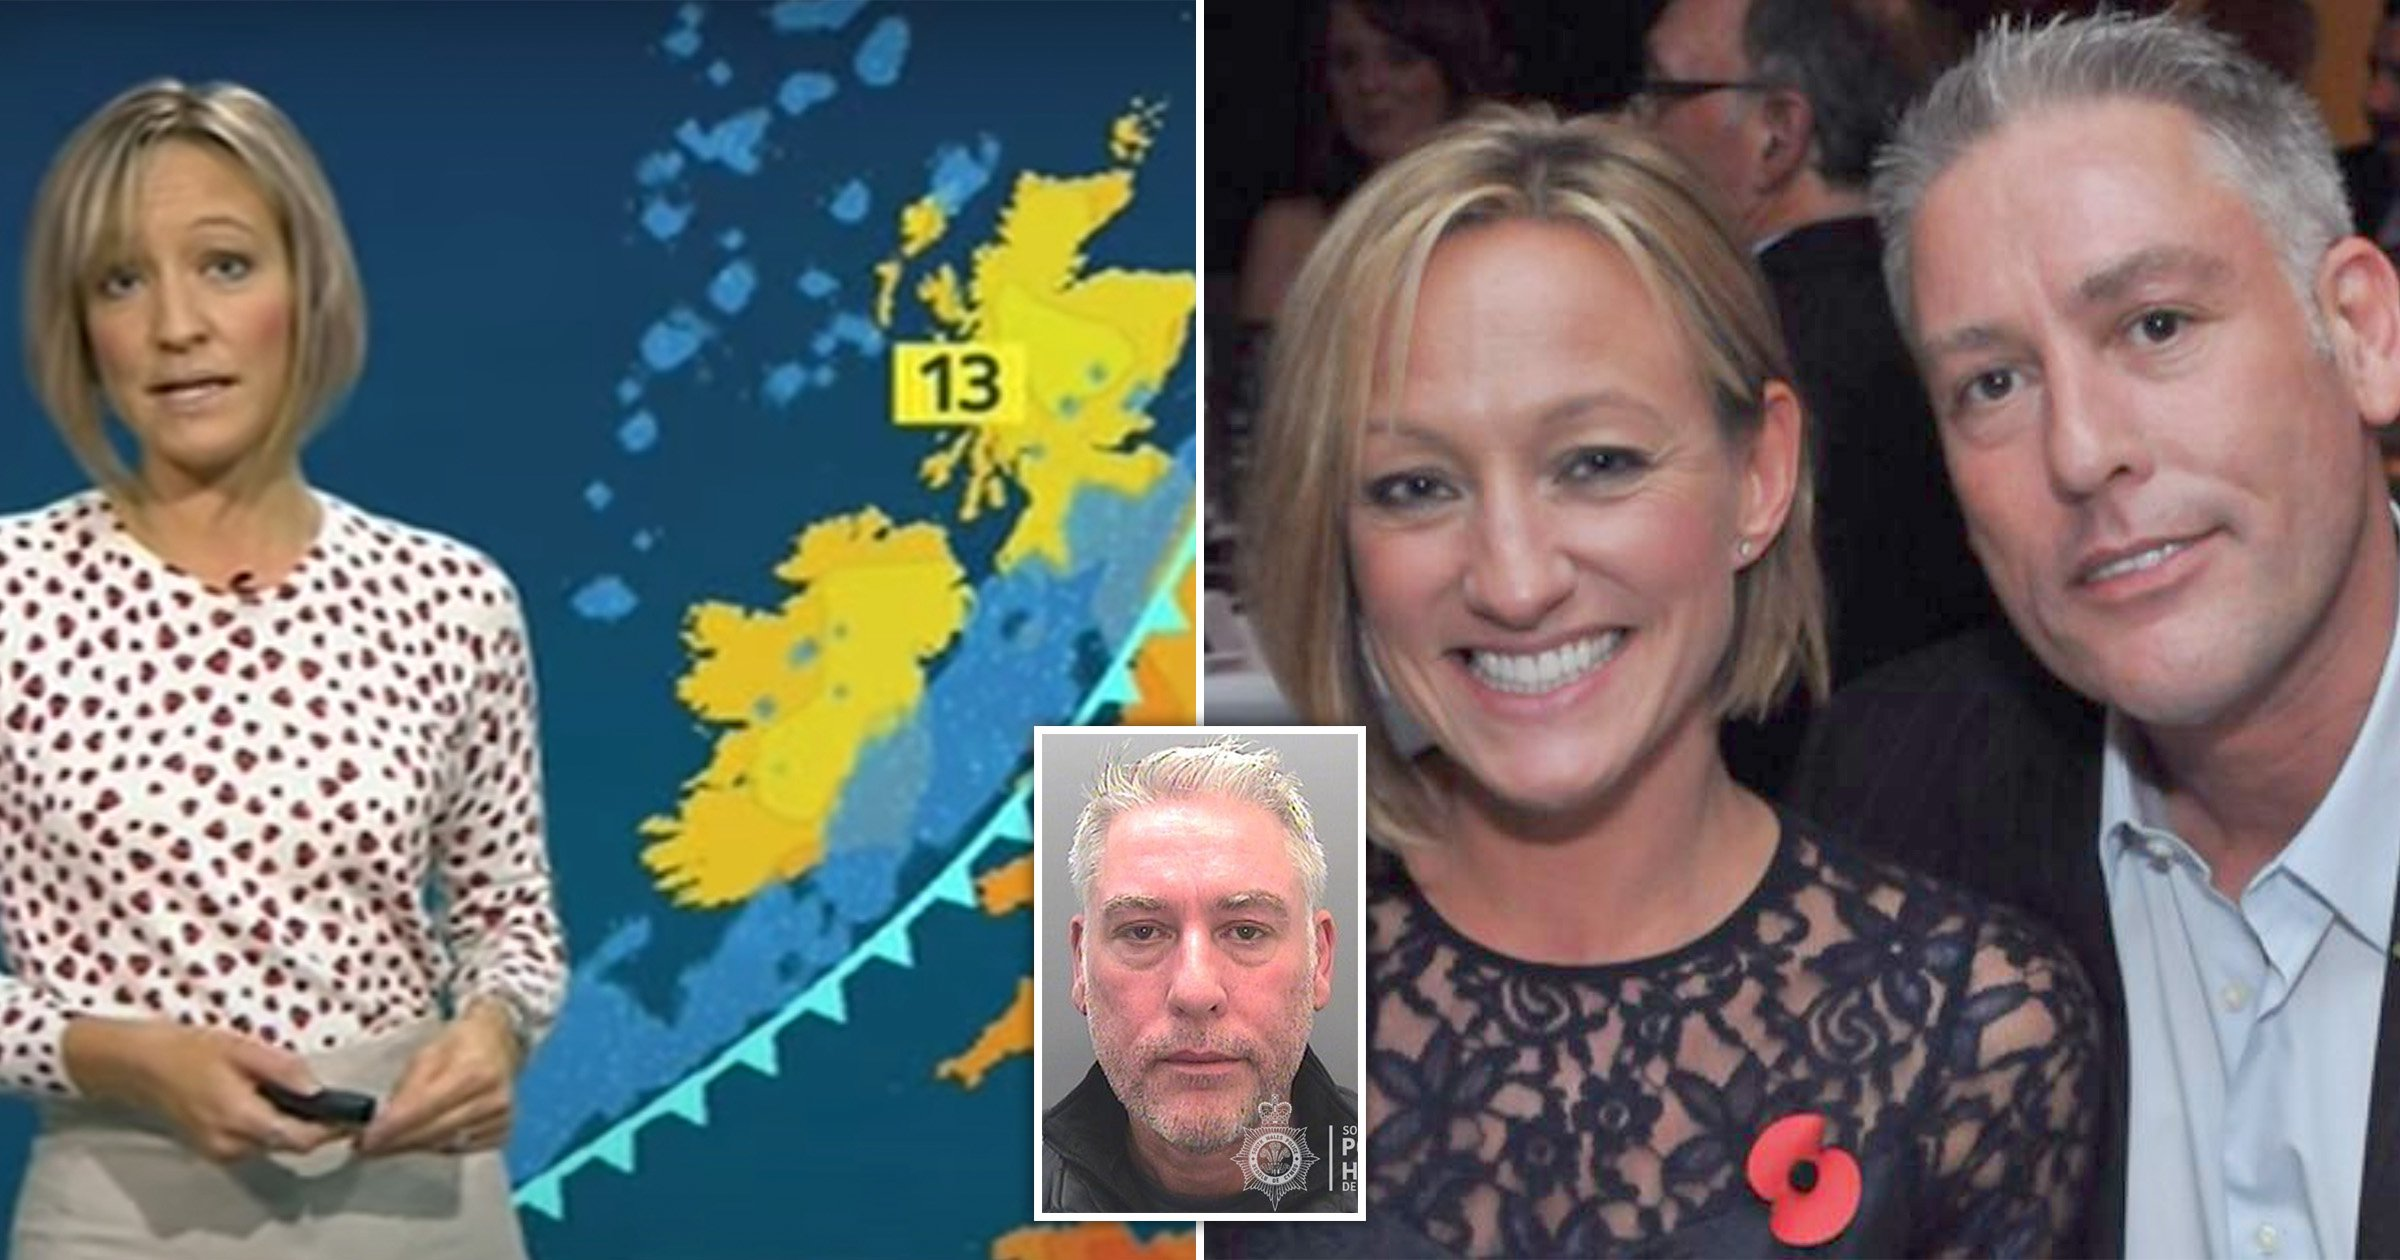 ITV weather presenter's obsessed ex jailed after fitting tracker to her car